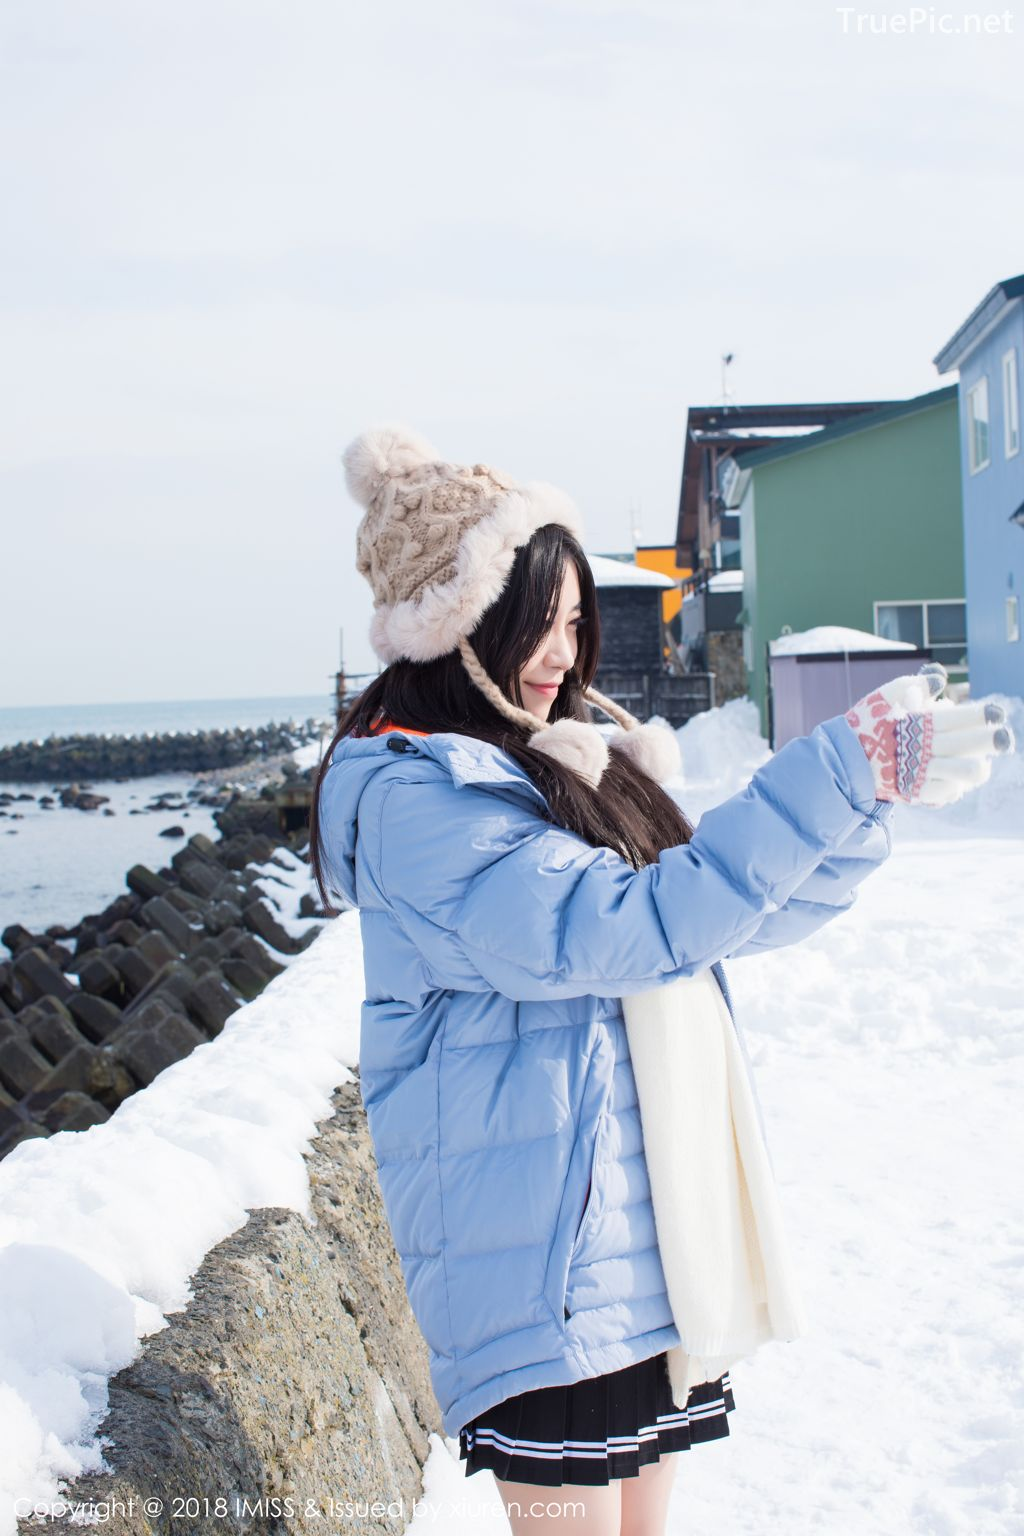 Image-IMISS-Vol.262-Sabrina model–Xu-Nuo-许诺-Sparkling-White-Snow-TruePic.net- Picture-8